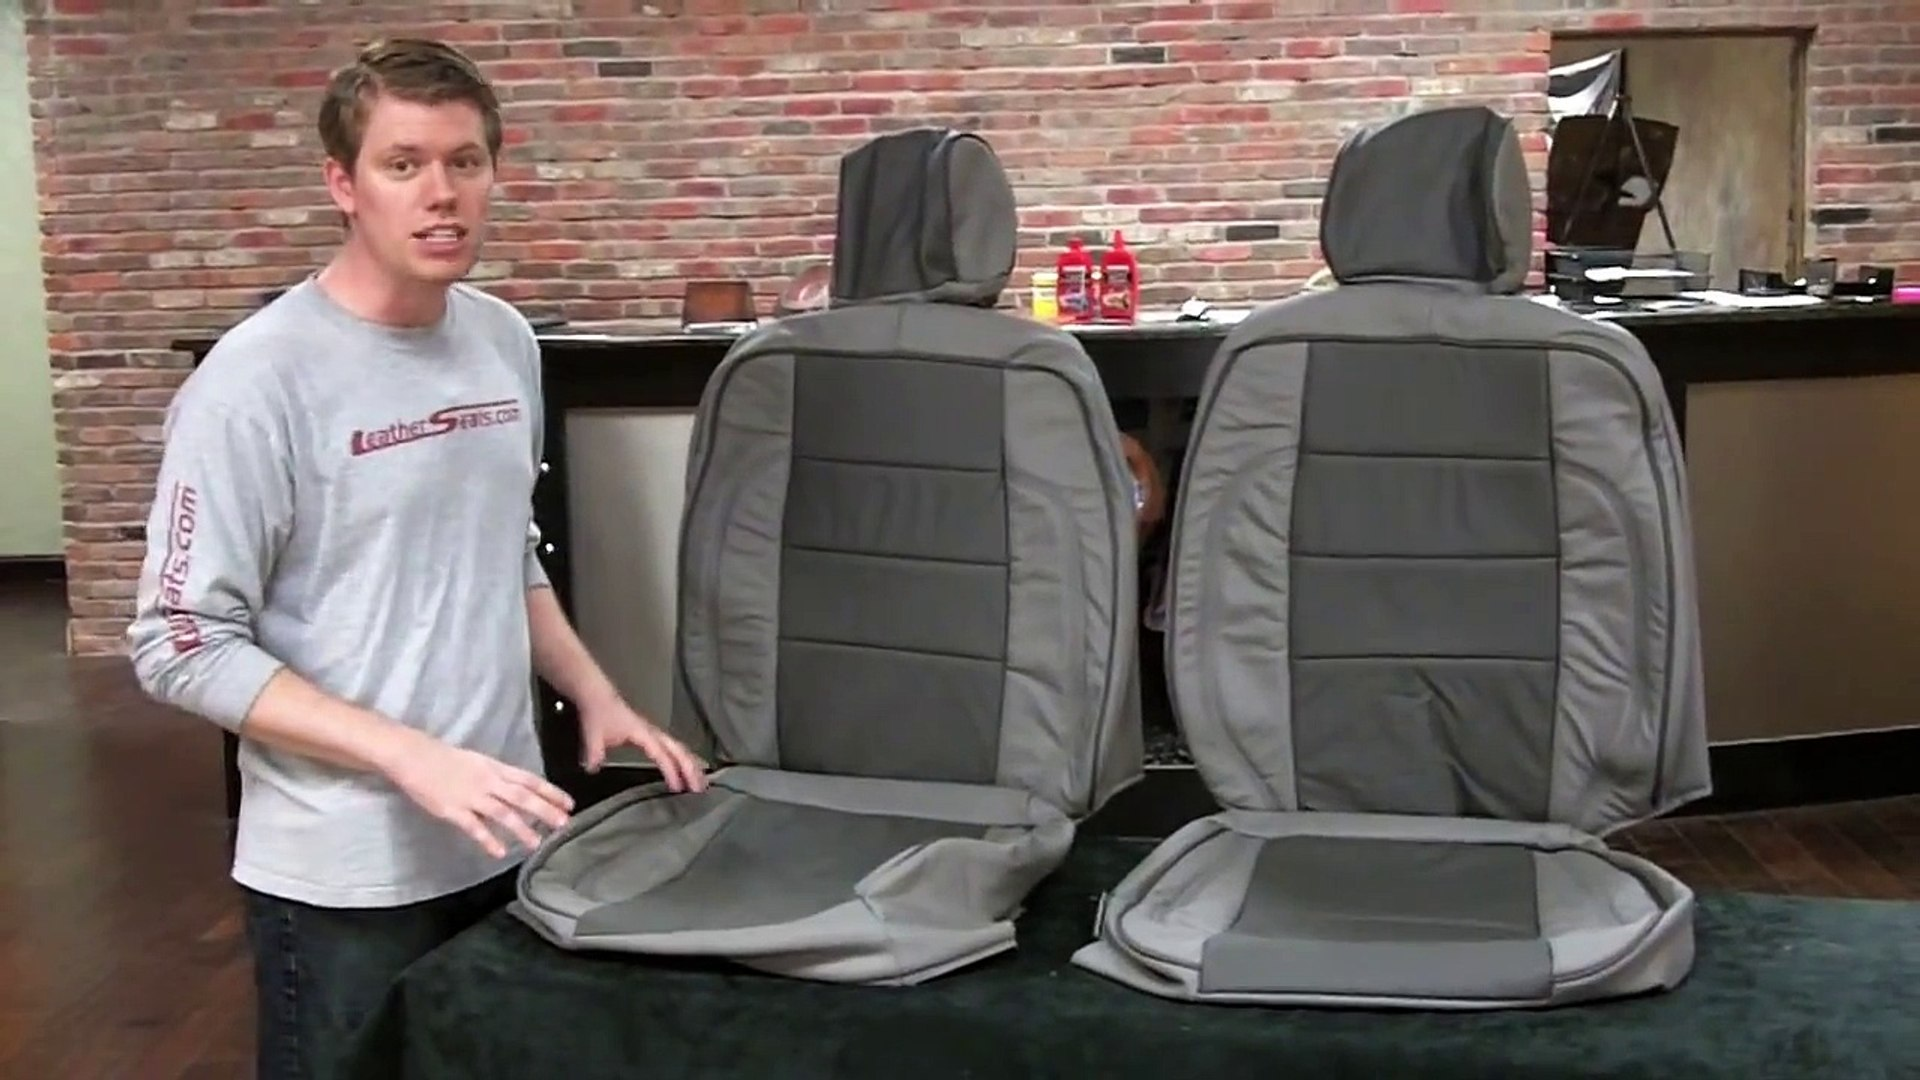 Sensational Lexus Gs300 Gs400 And Gs430 Leather Seat Covers Interior Upholstery Kit Leatherseats Com Gmtry Best Dining Table And Chair Ideas Images Gmtryco